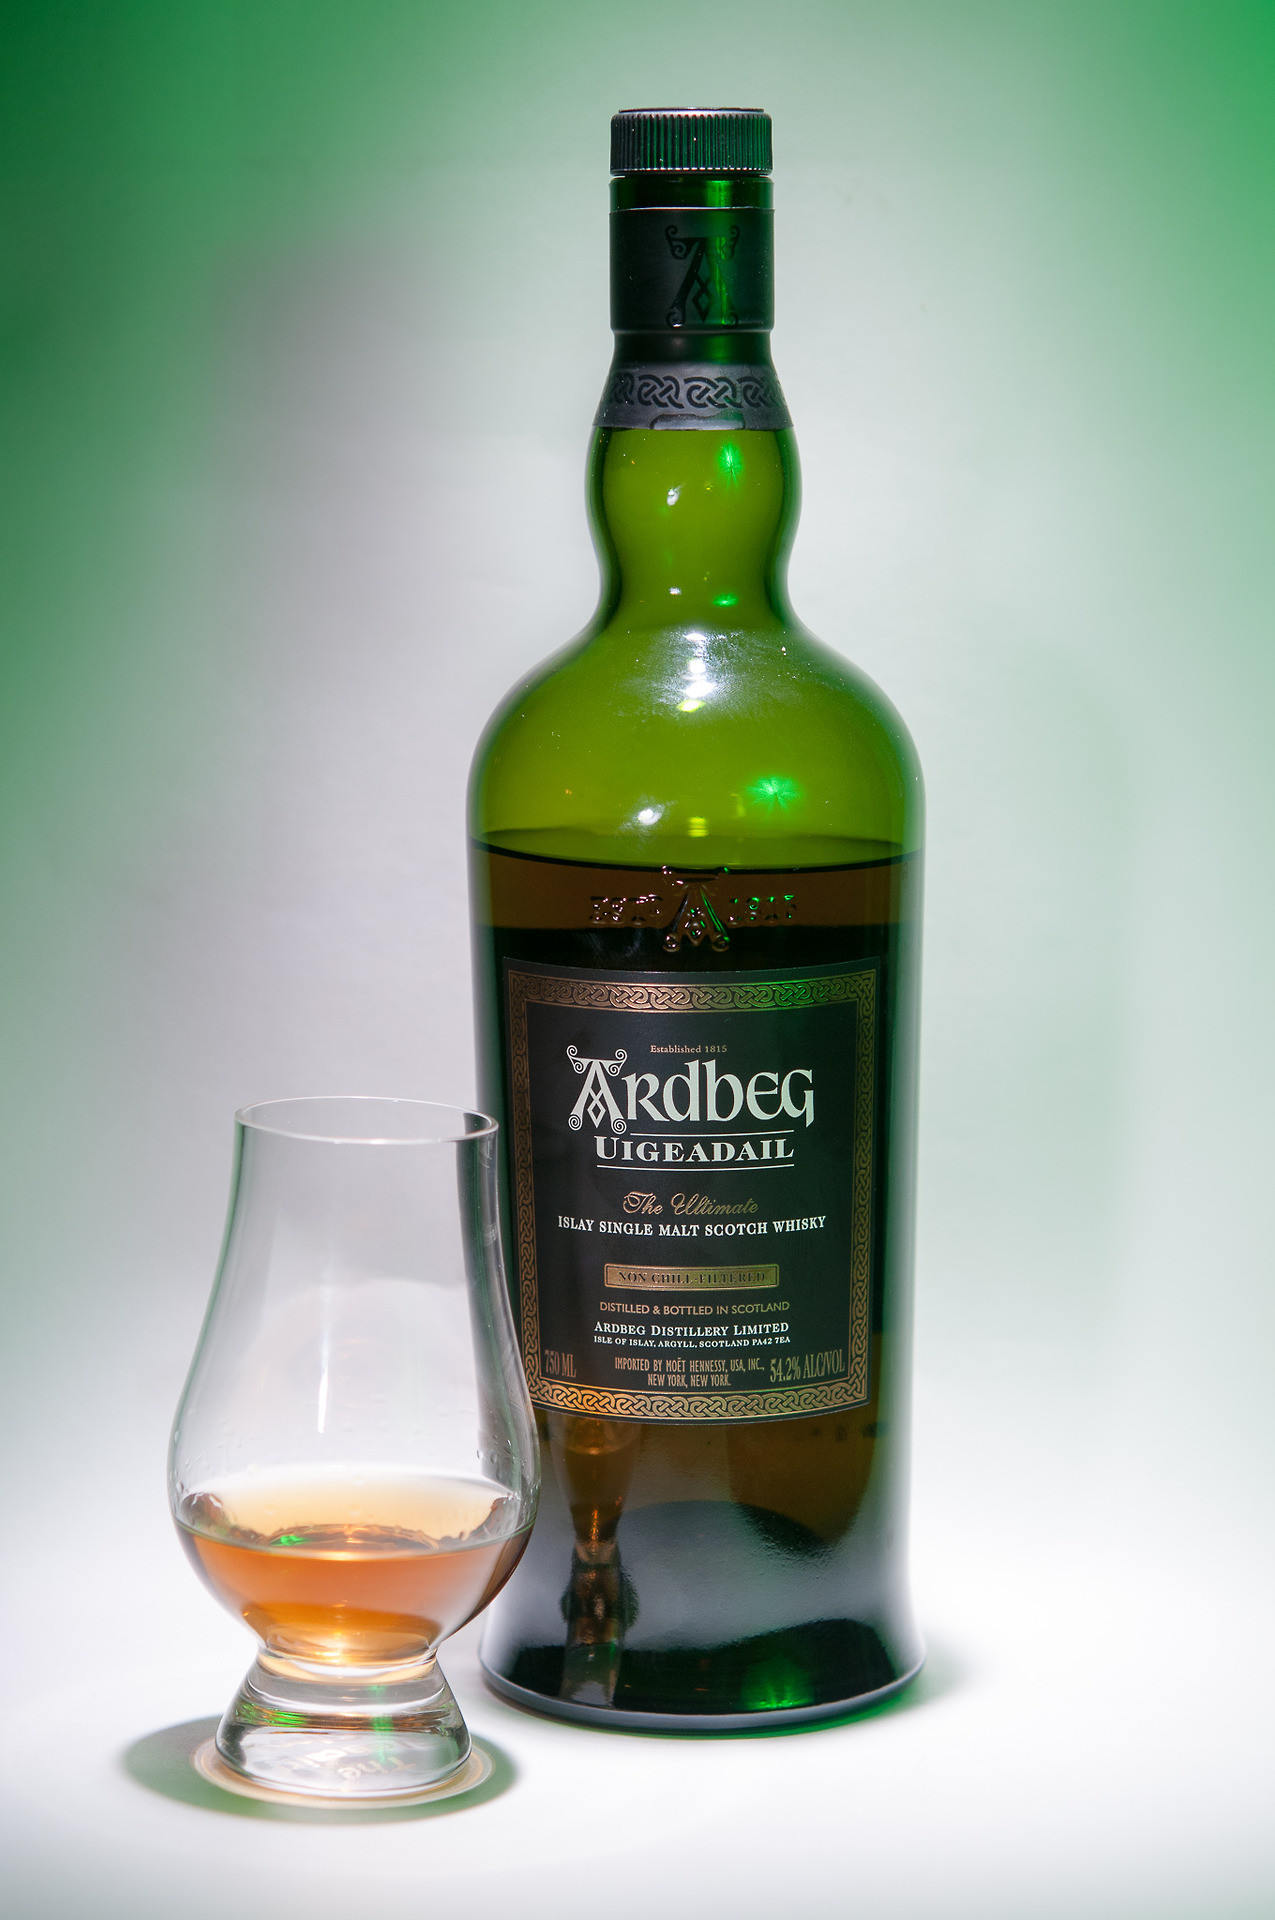 Ardbeg Uigeadail – single malt scotch